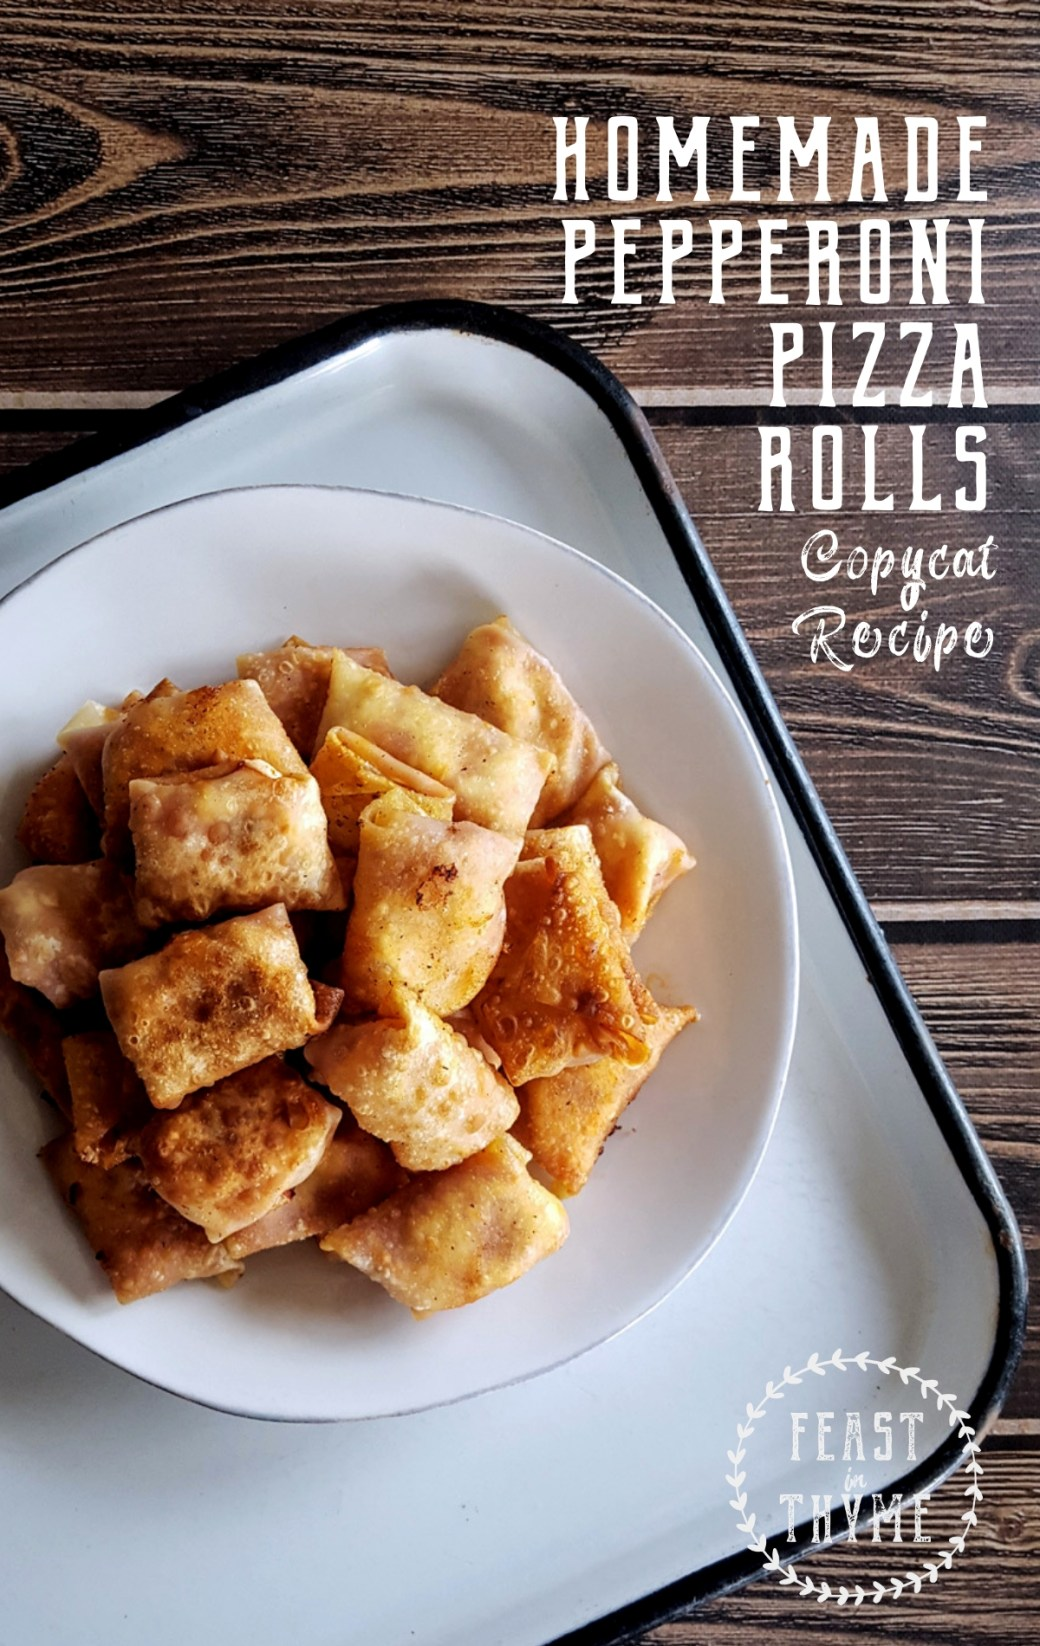 Get the party started with a big batch of homemade pepperoni pizza rolls! Baked or fried, these delicious bite-sized snacks are super simple to make for any occasion. #pizzaparty #copycat #pizzarolls #gameday | FeastInThyme.com